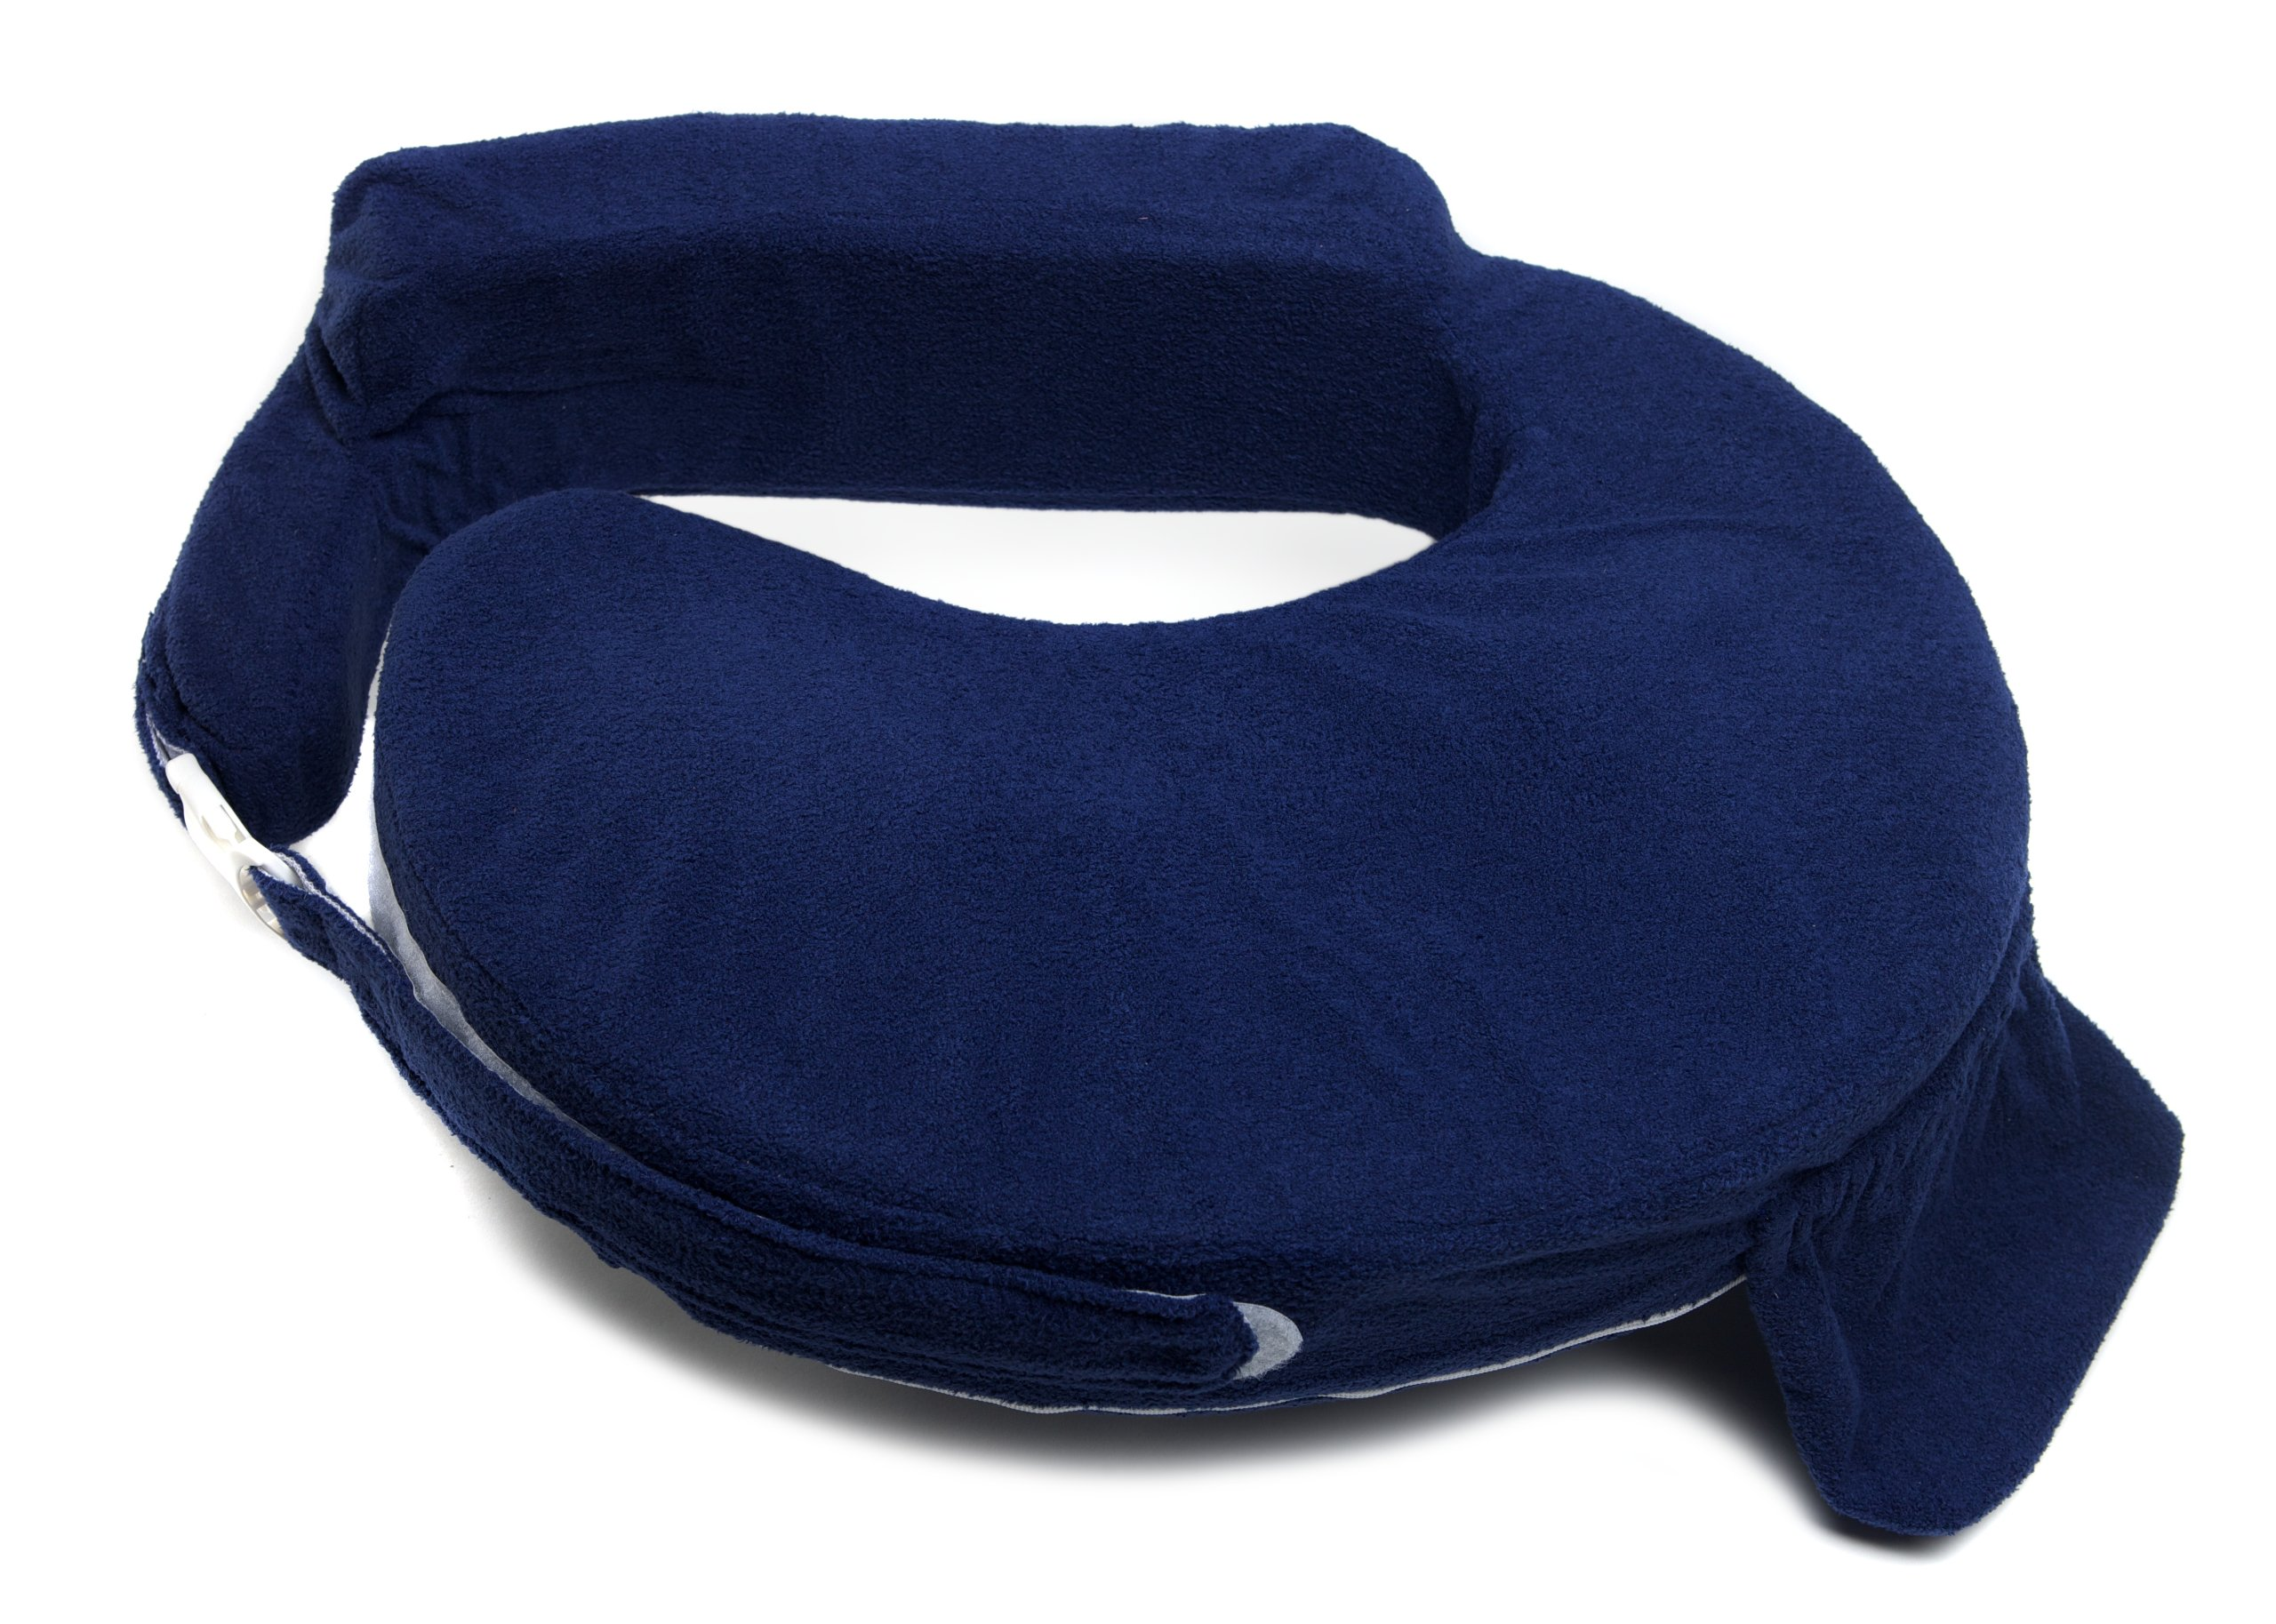 My Brest Friend Nursing Pillow Deluxe Slipcover – Machine Washable Breastfeeding Cushion Cover - pillow not included, Navy by My Brest Friend (Image #2)